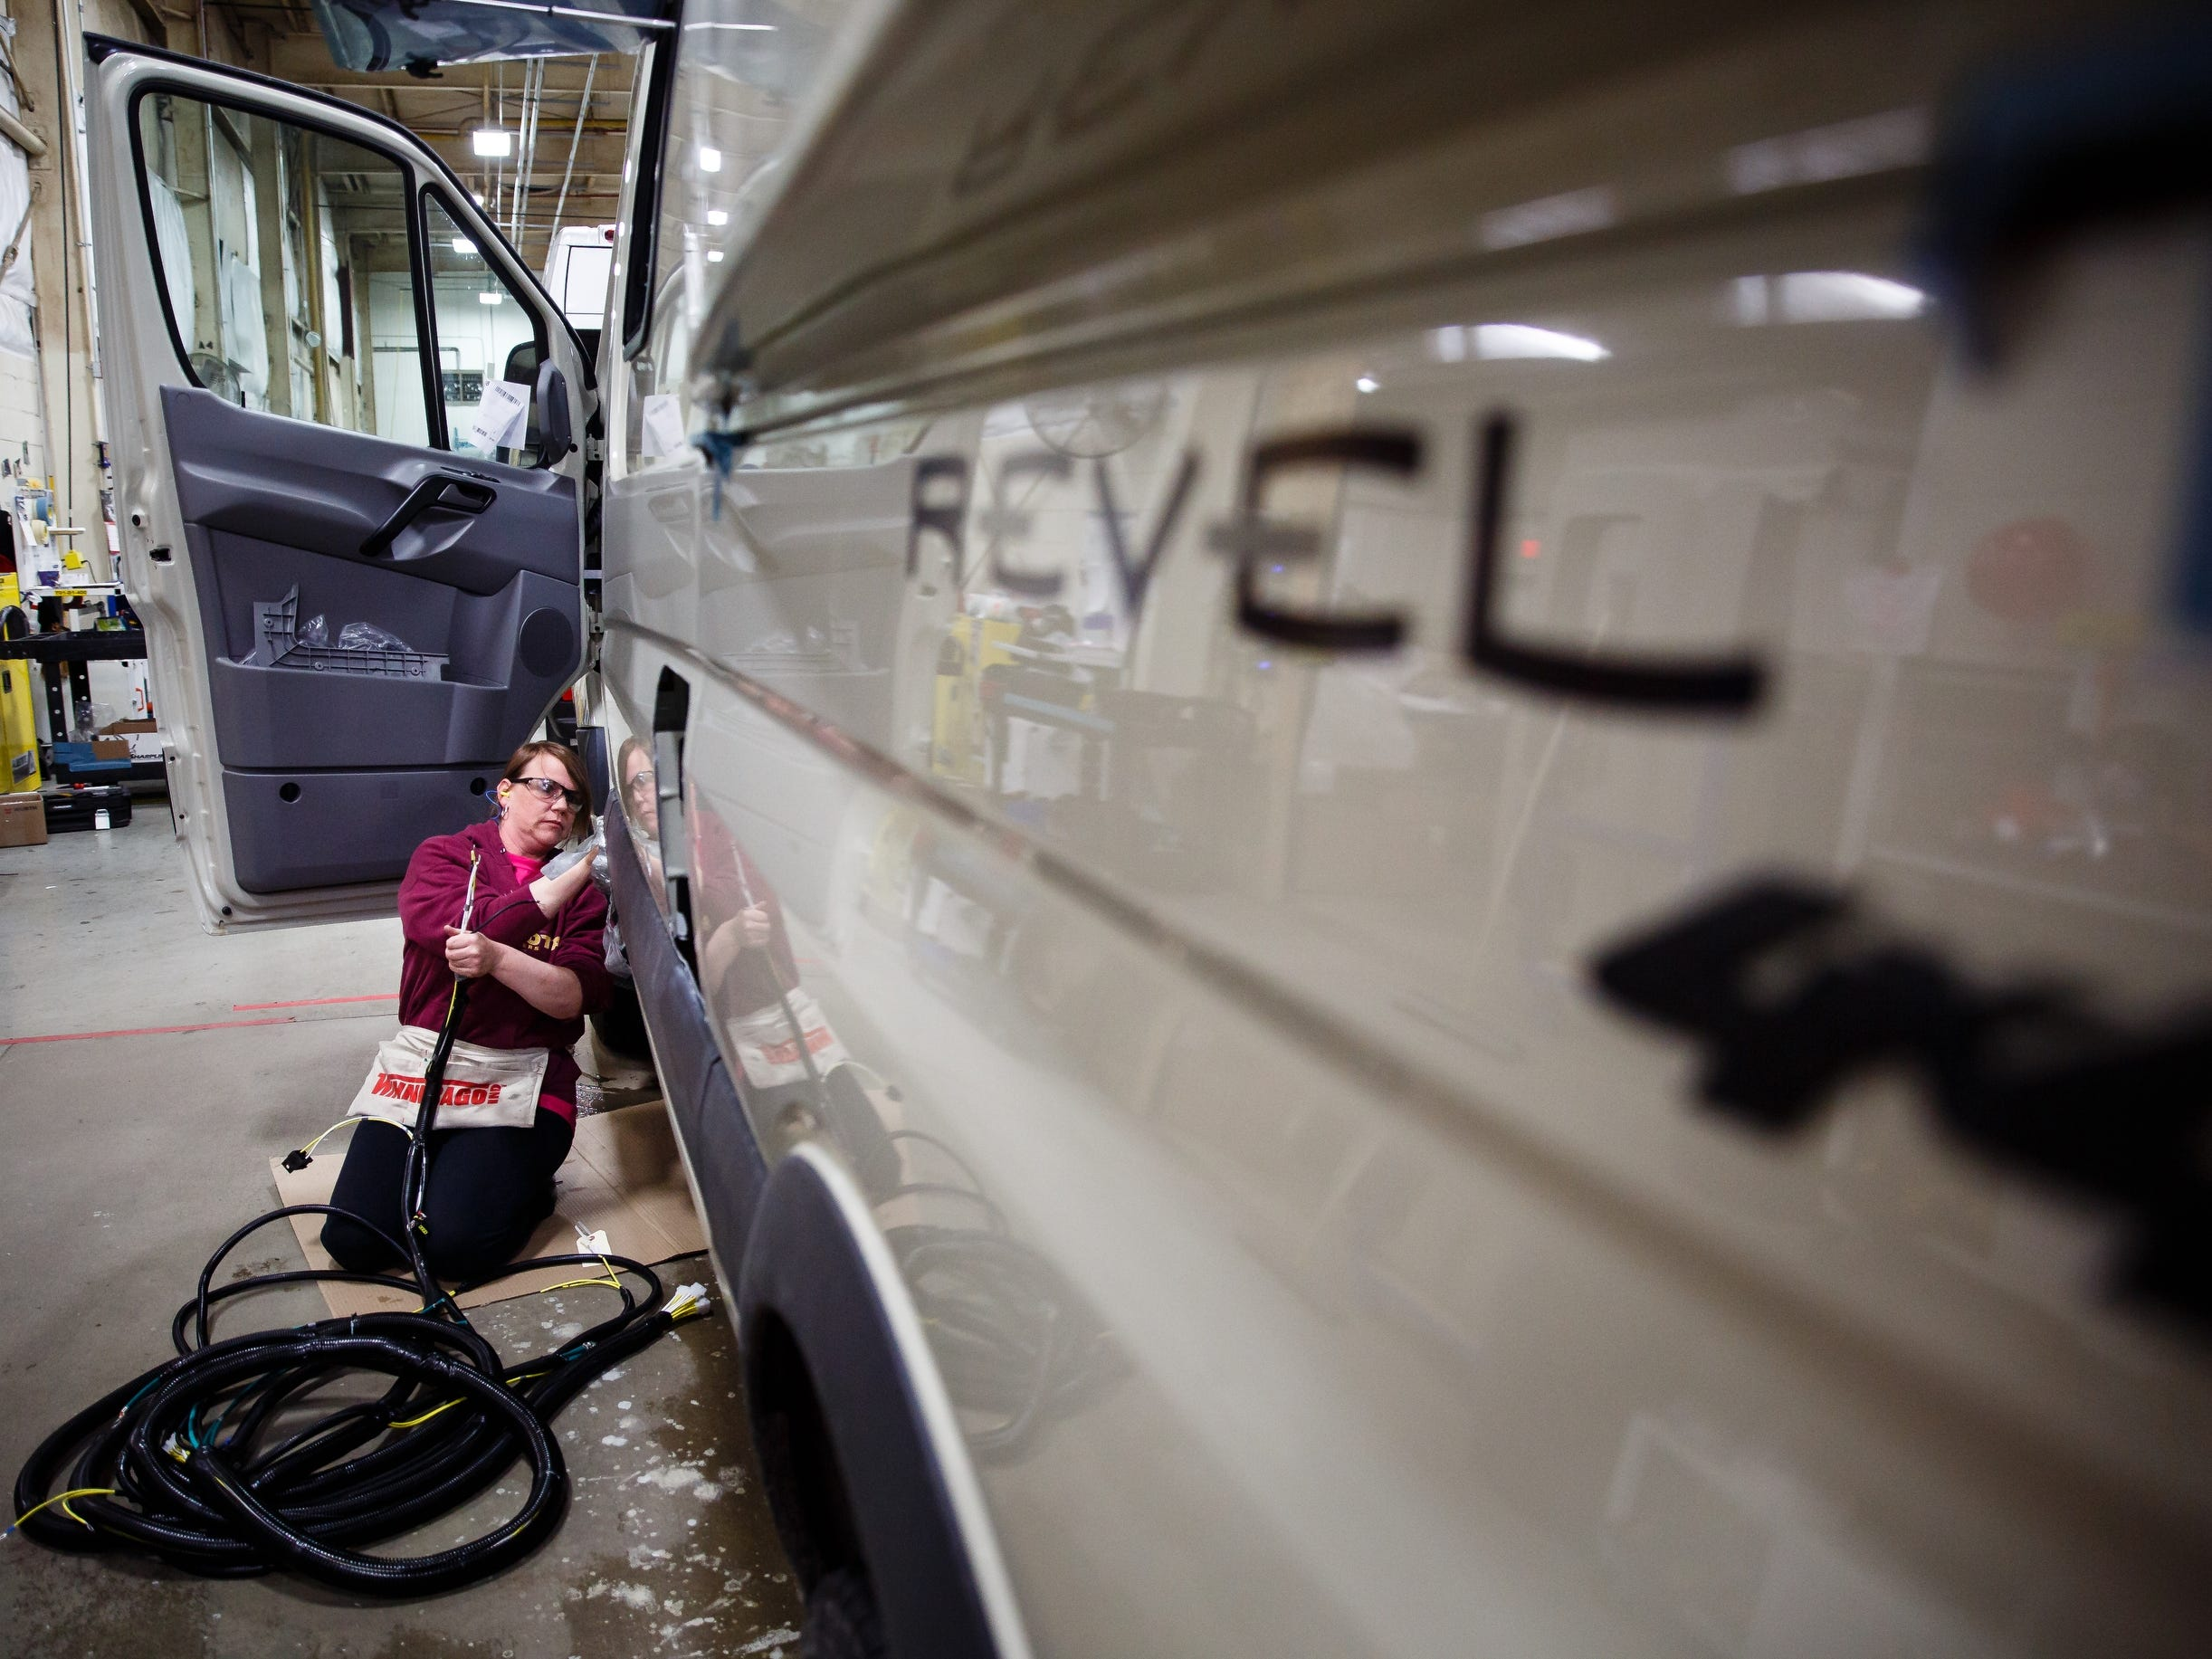 Workers install a wiring harness on the Winnebago Revel at the companies Lake Mills factory on Wednesday, Dec. 5, 2018. The Revel, with its 4x4 and rugged nature has sparked the interest of outdoor enthusiasts and has helped the motor home manufacture rebound from poor sales during the recession.